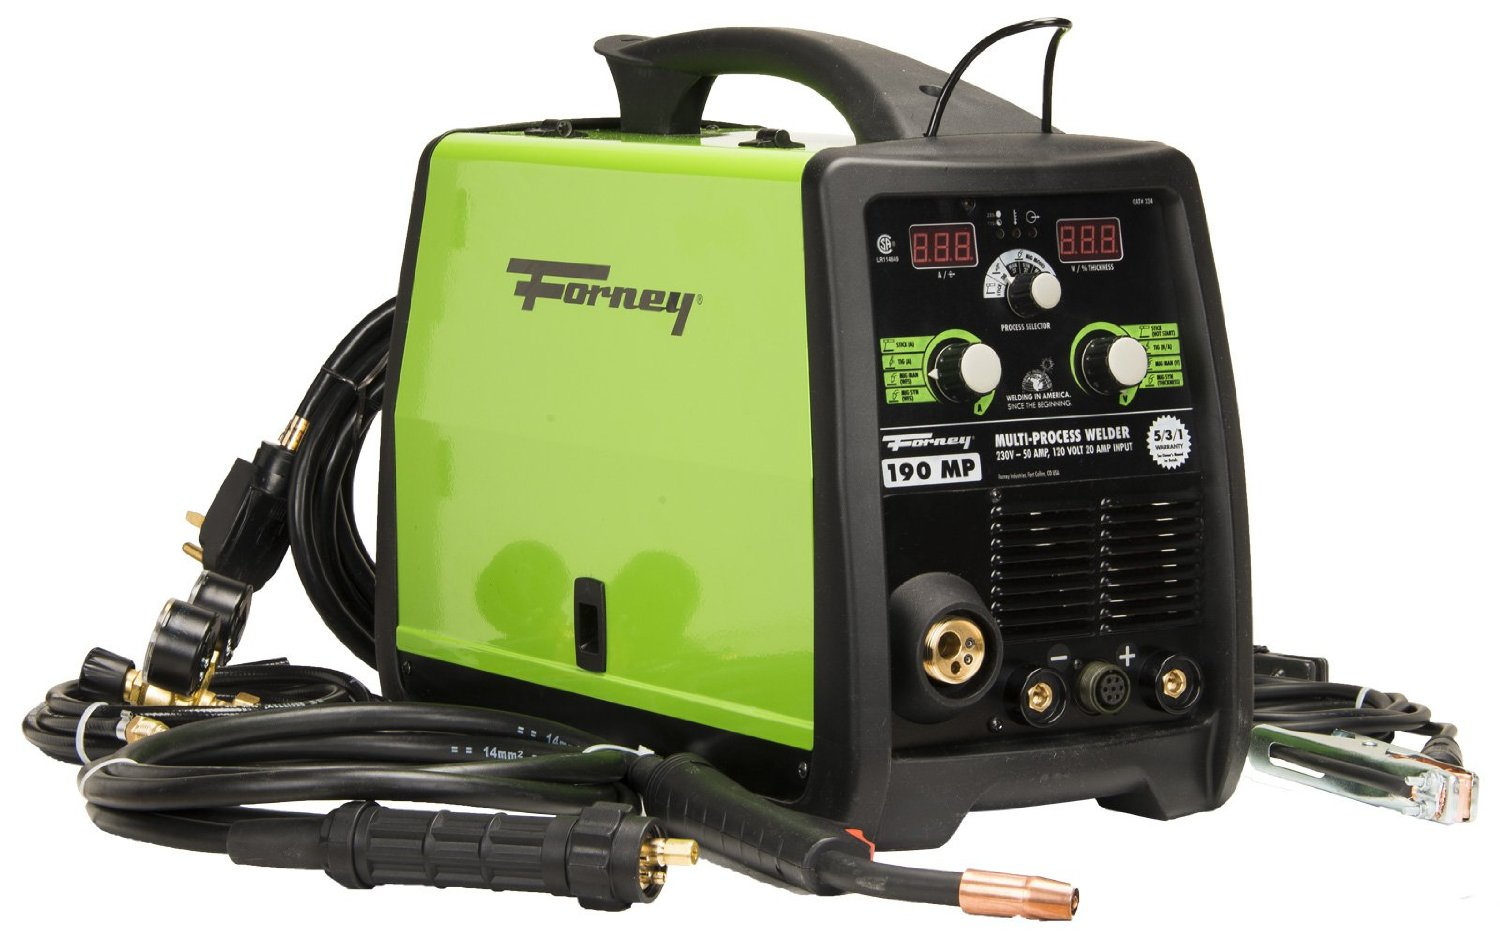 """stick welding Miller stick welding machines stick welders, or smaw (short for """"shielded metal arc welding""""), are the tool of choice for windy, outdoor welding the stick welding process."""